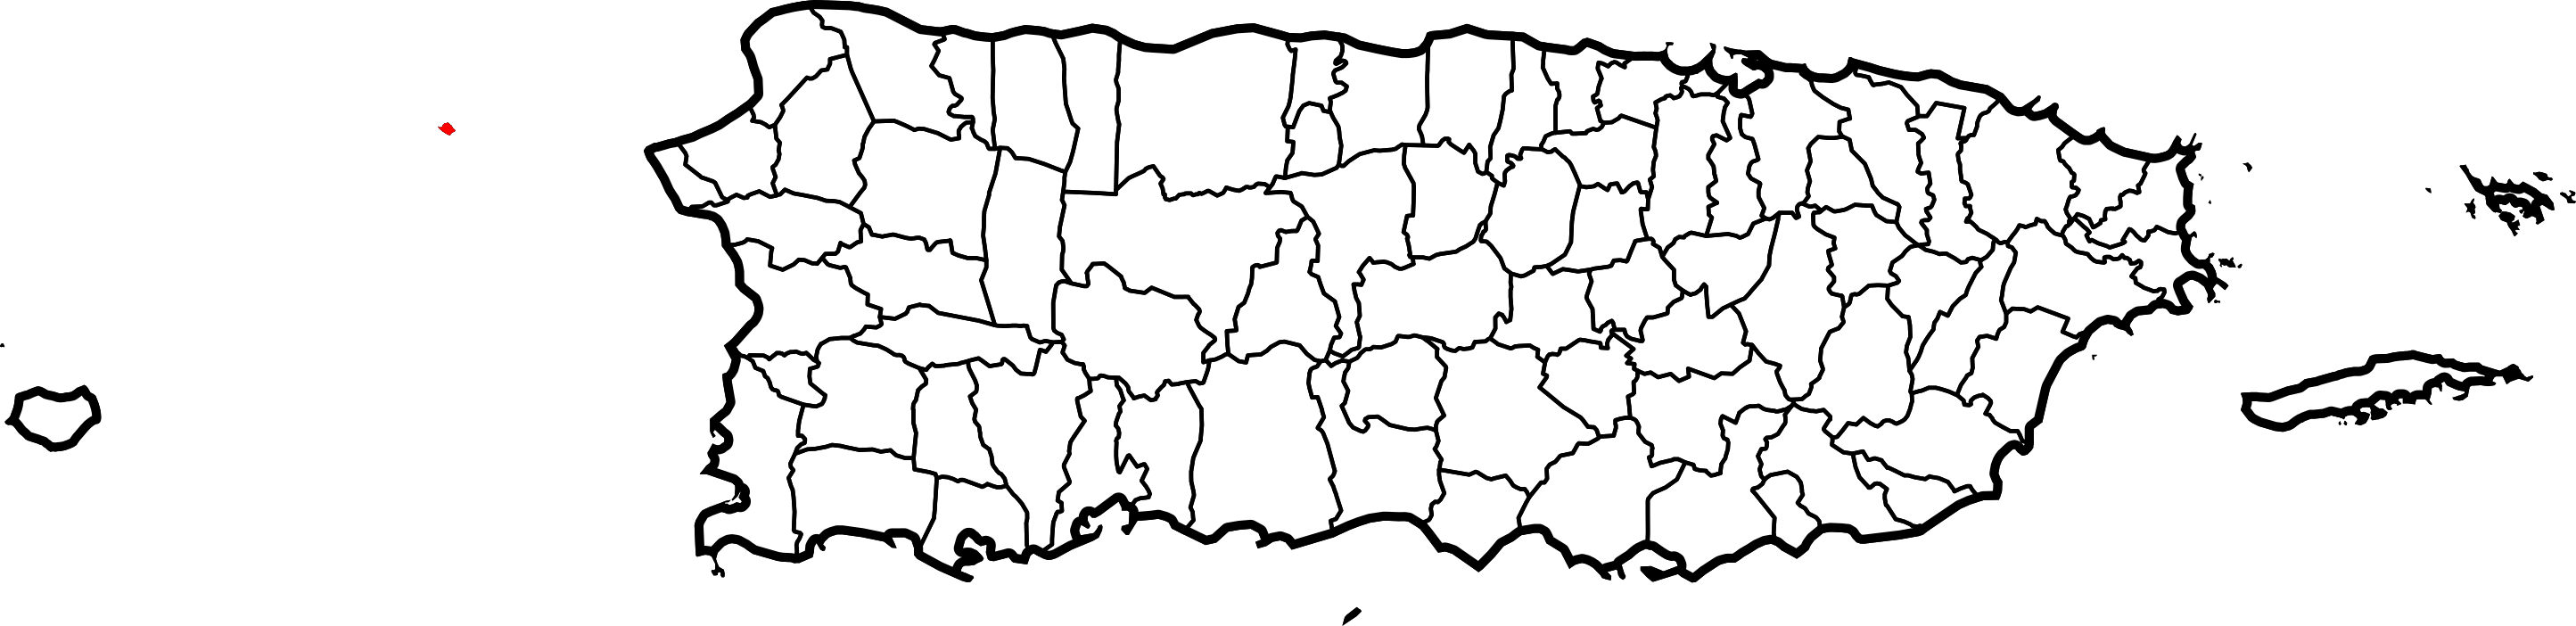 Puerto rico map png. File of highlighting desecheo